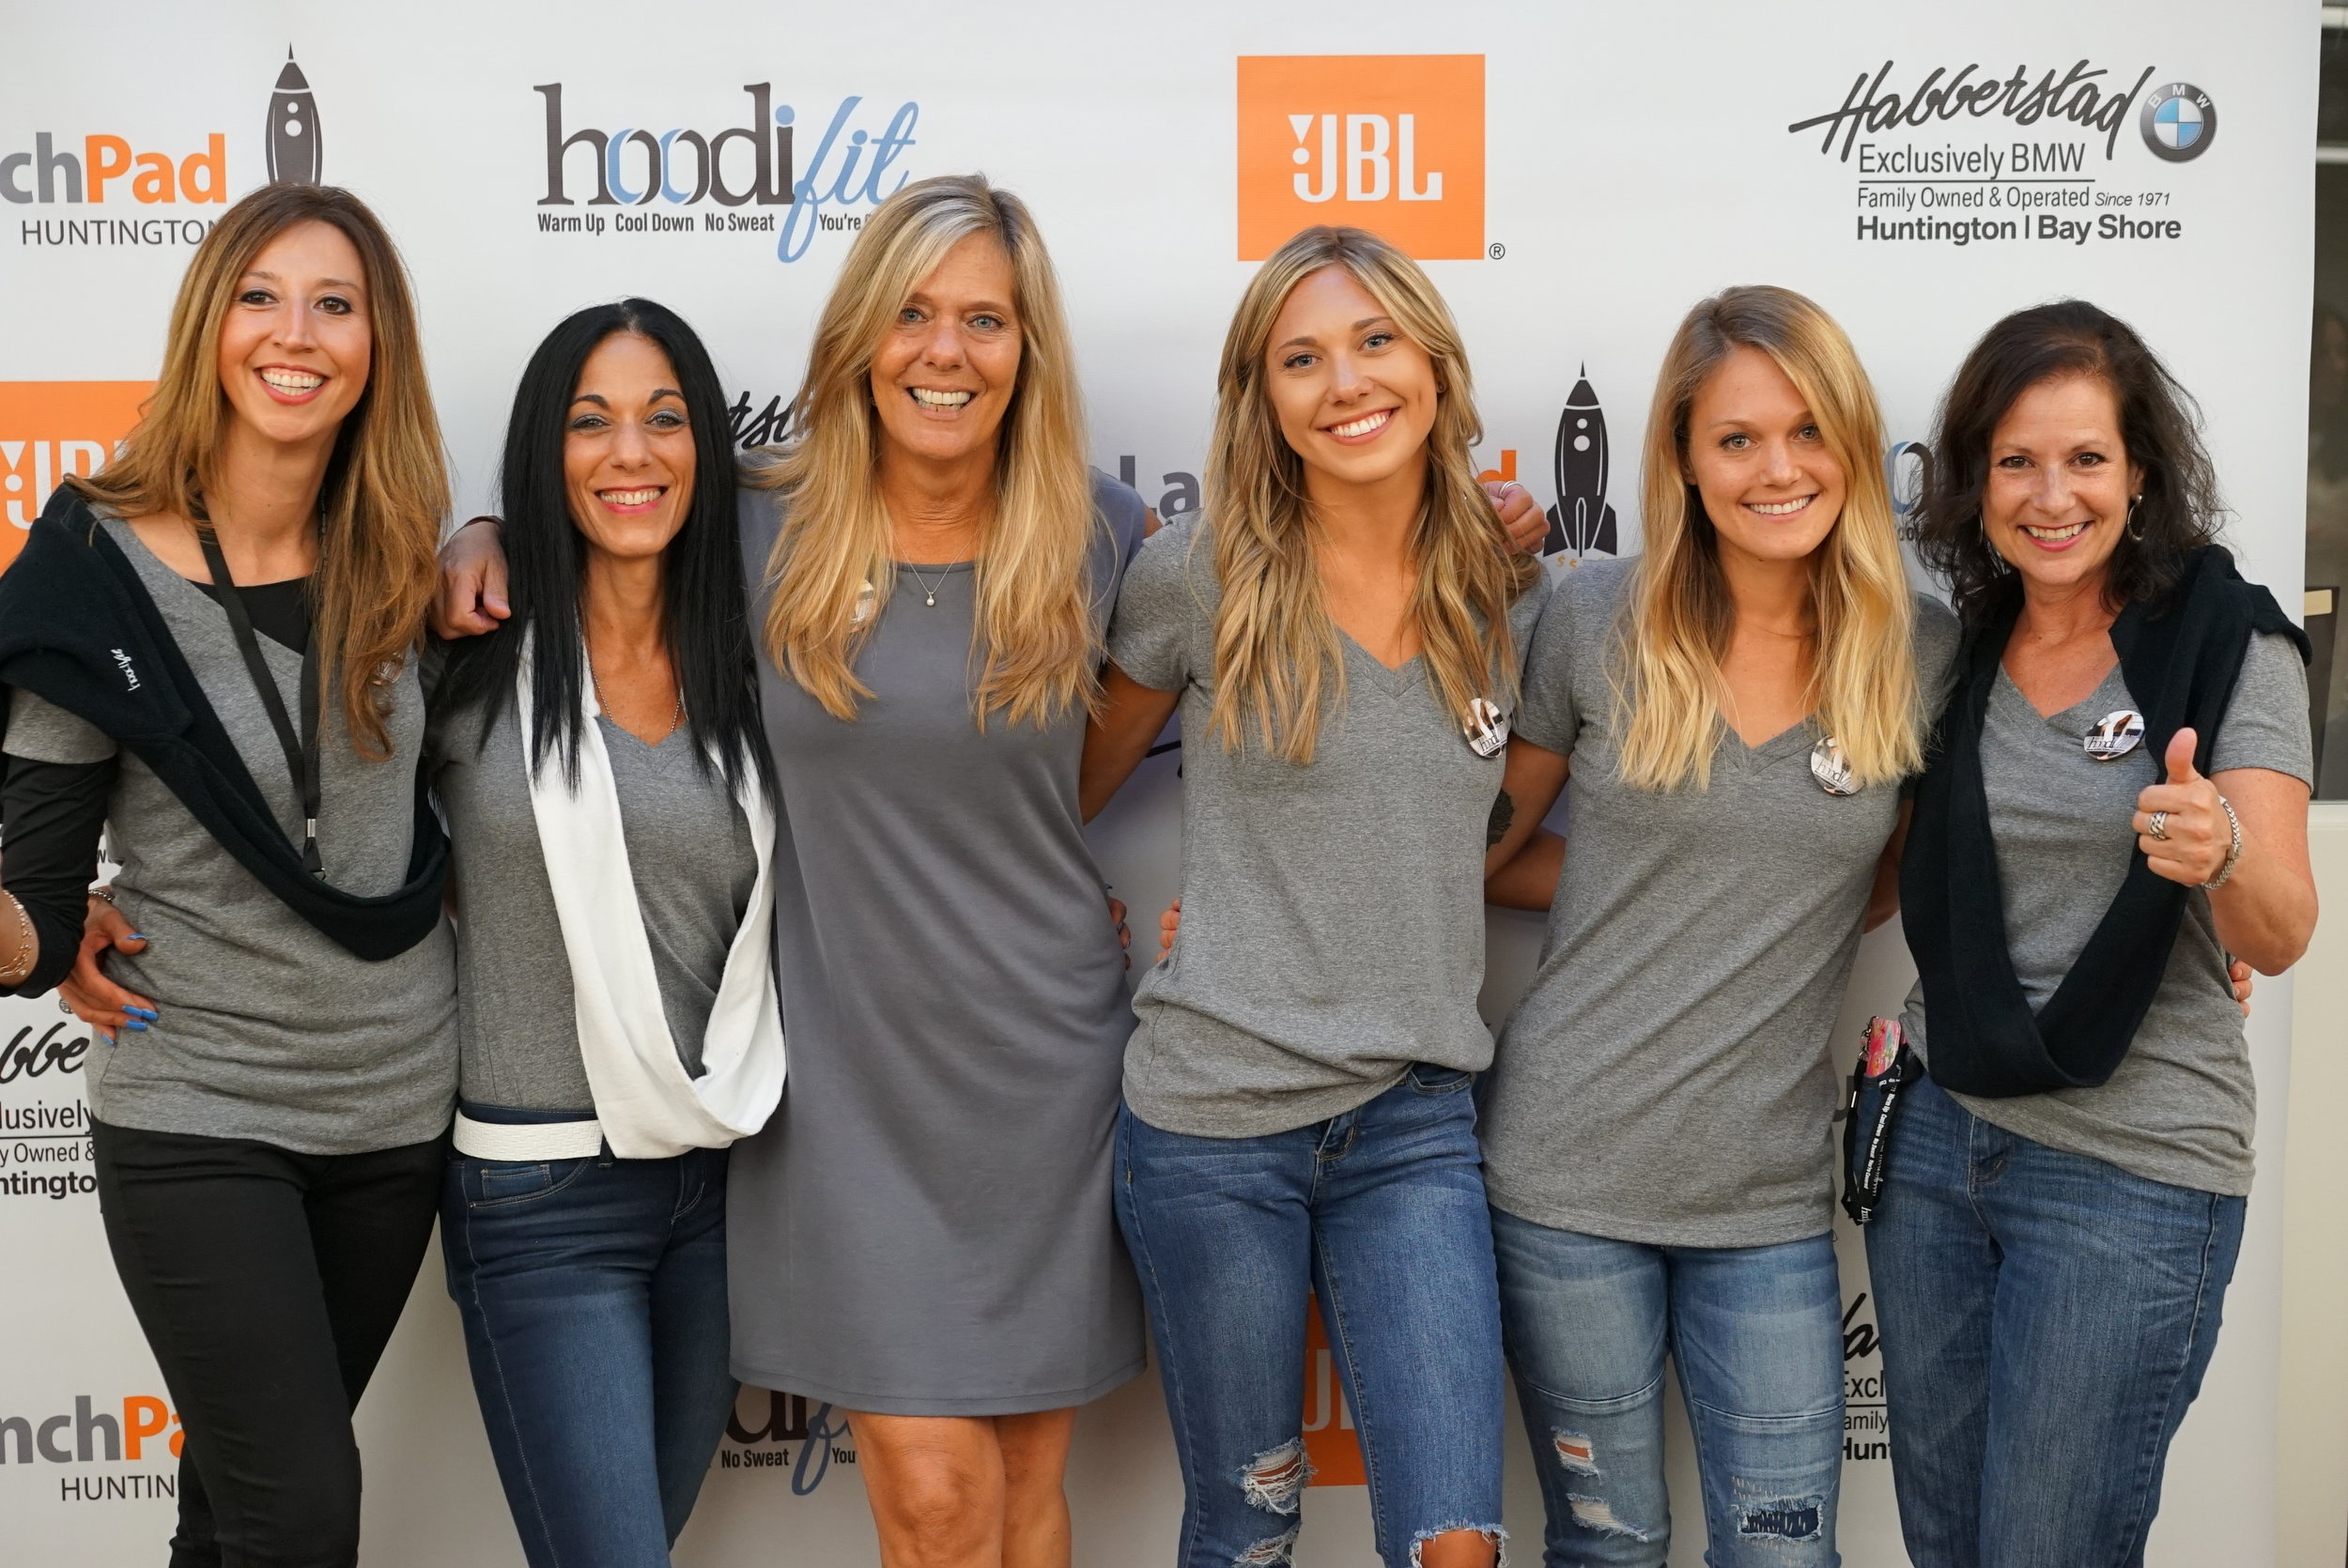 Team HoodiFit - Much love to our amazing team, a great big cyber 'shout out' and much love! We couldn't do this without every one of you <3From left to right: Veronica and Maria - Sales and promotions, Laurie, Sarah, Melissa and Hope - our fabulous graphic and web designer.